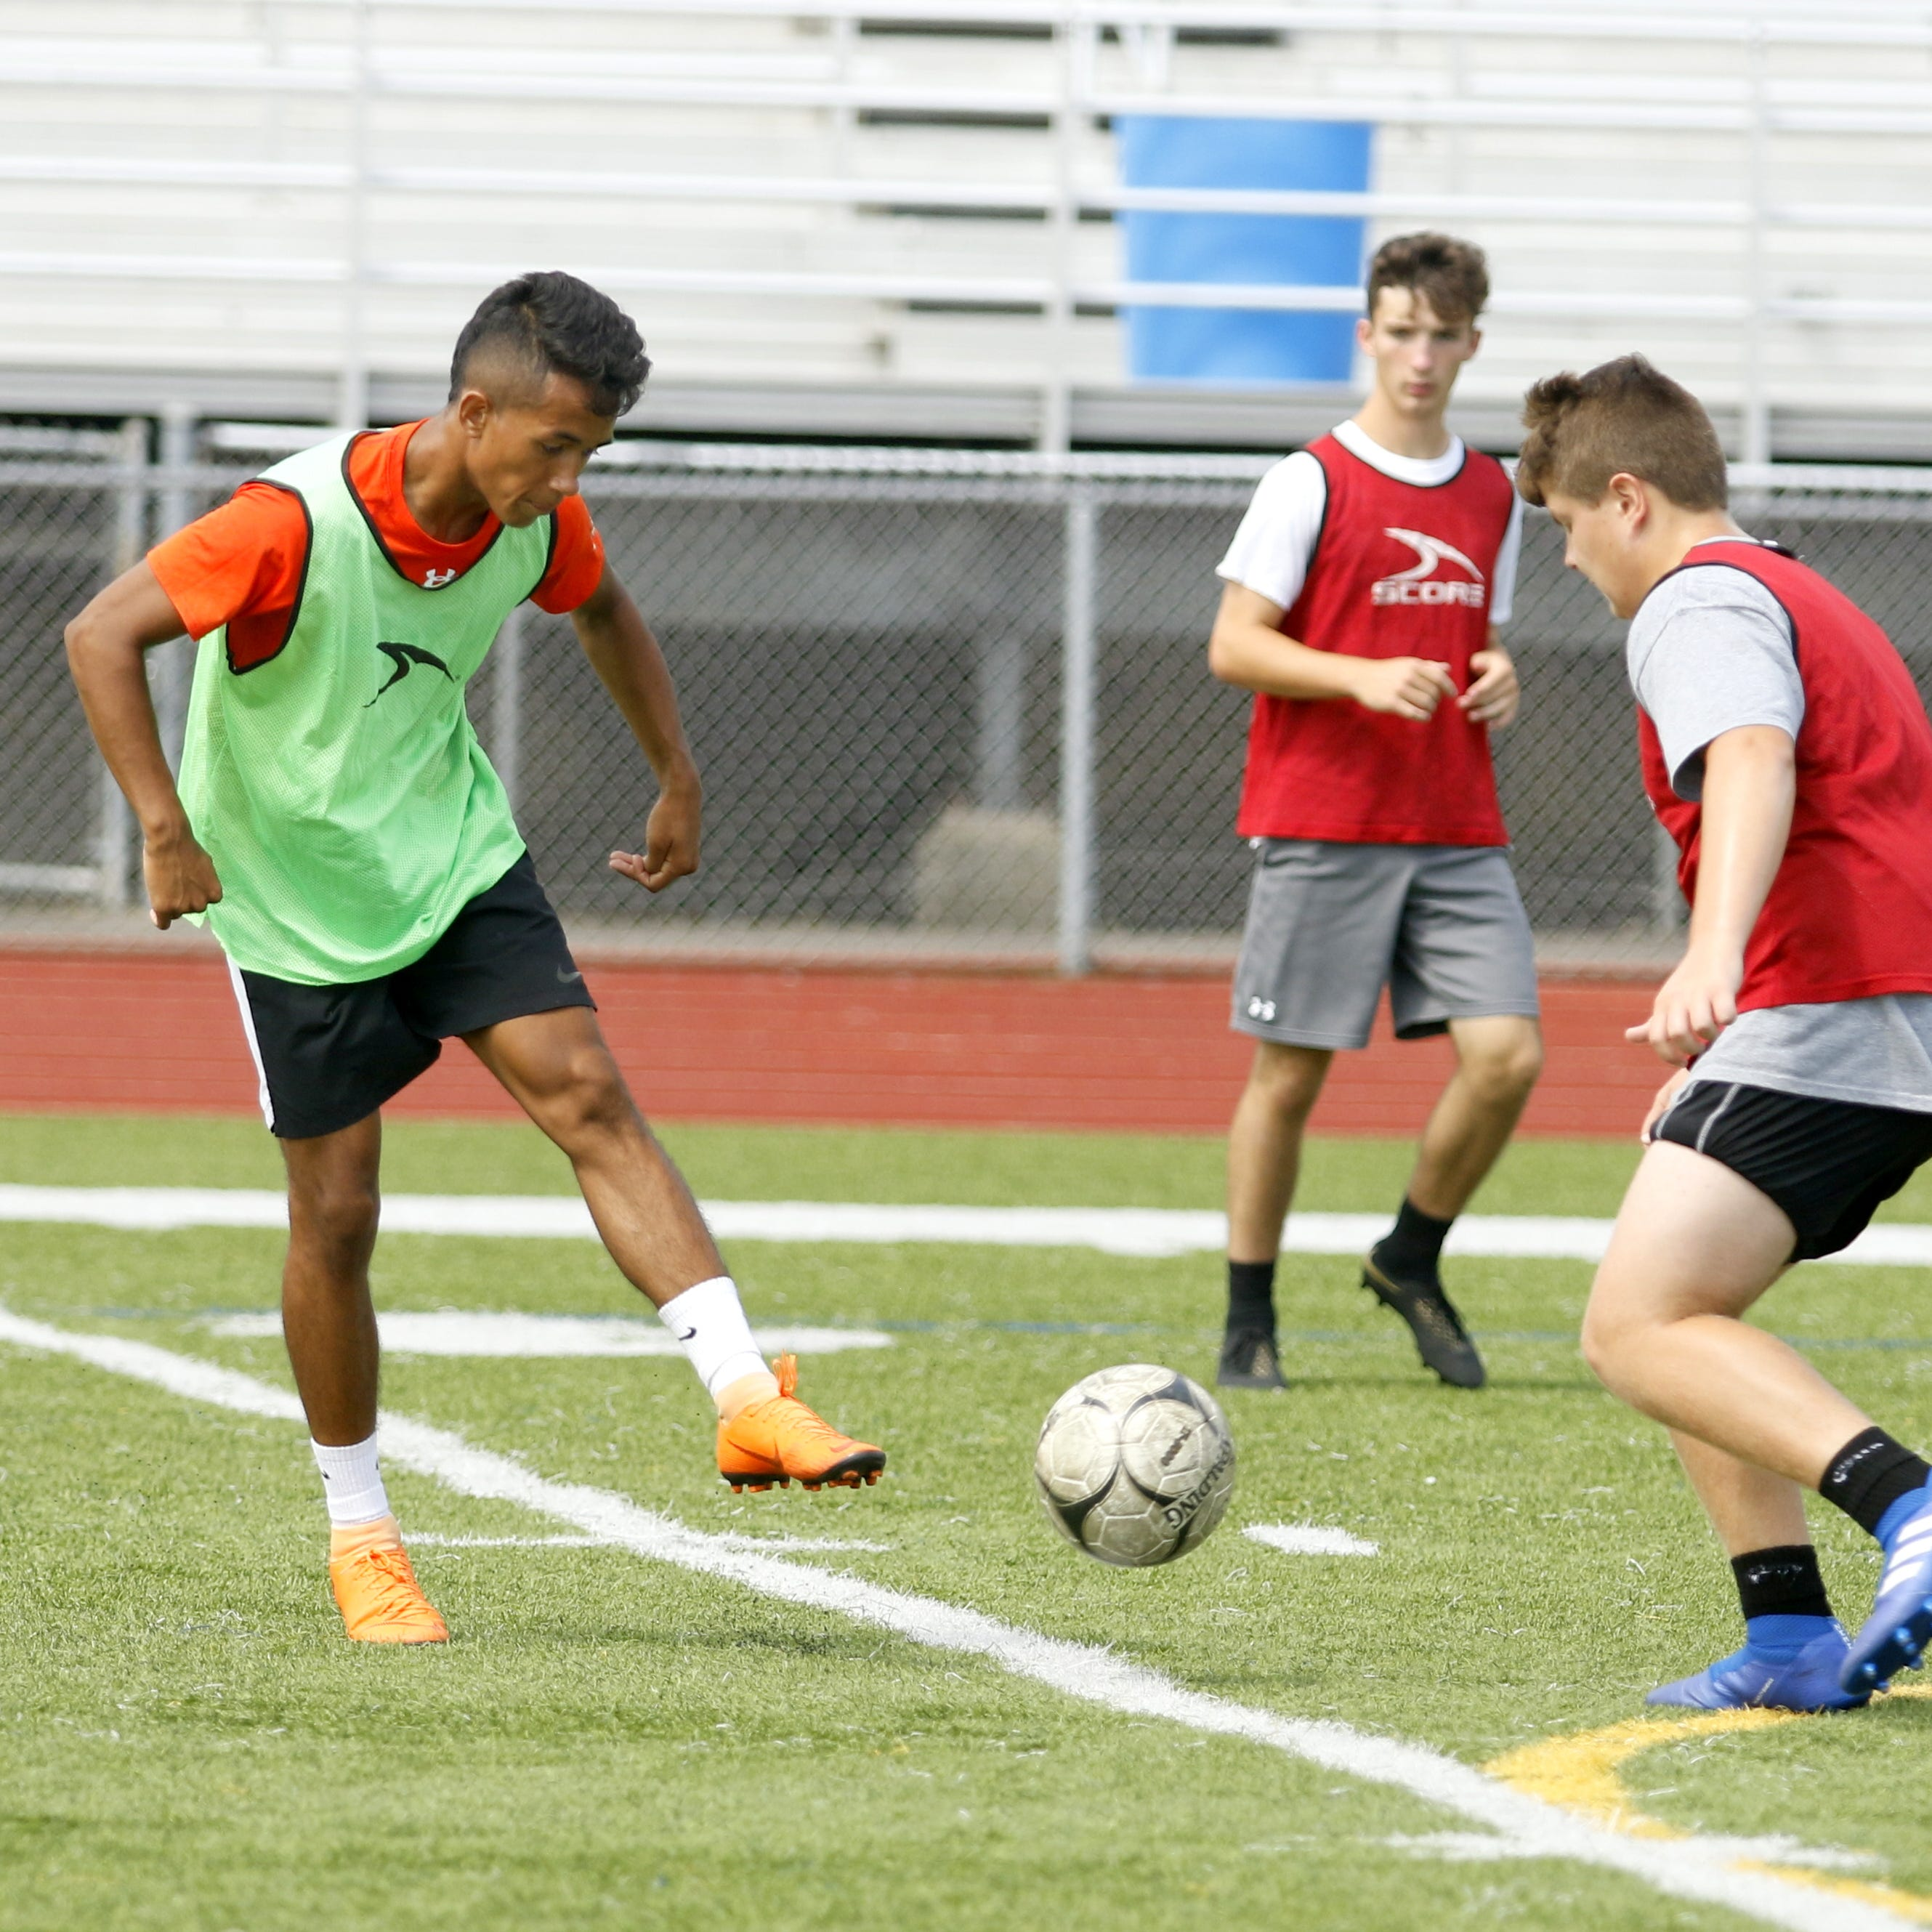 Boys soccer: Express boasts offensive firepower after sectional runner-up finish in 2017